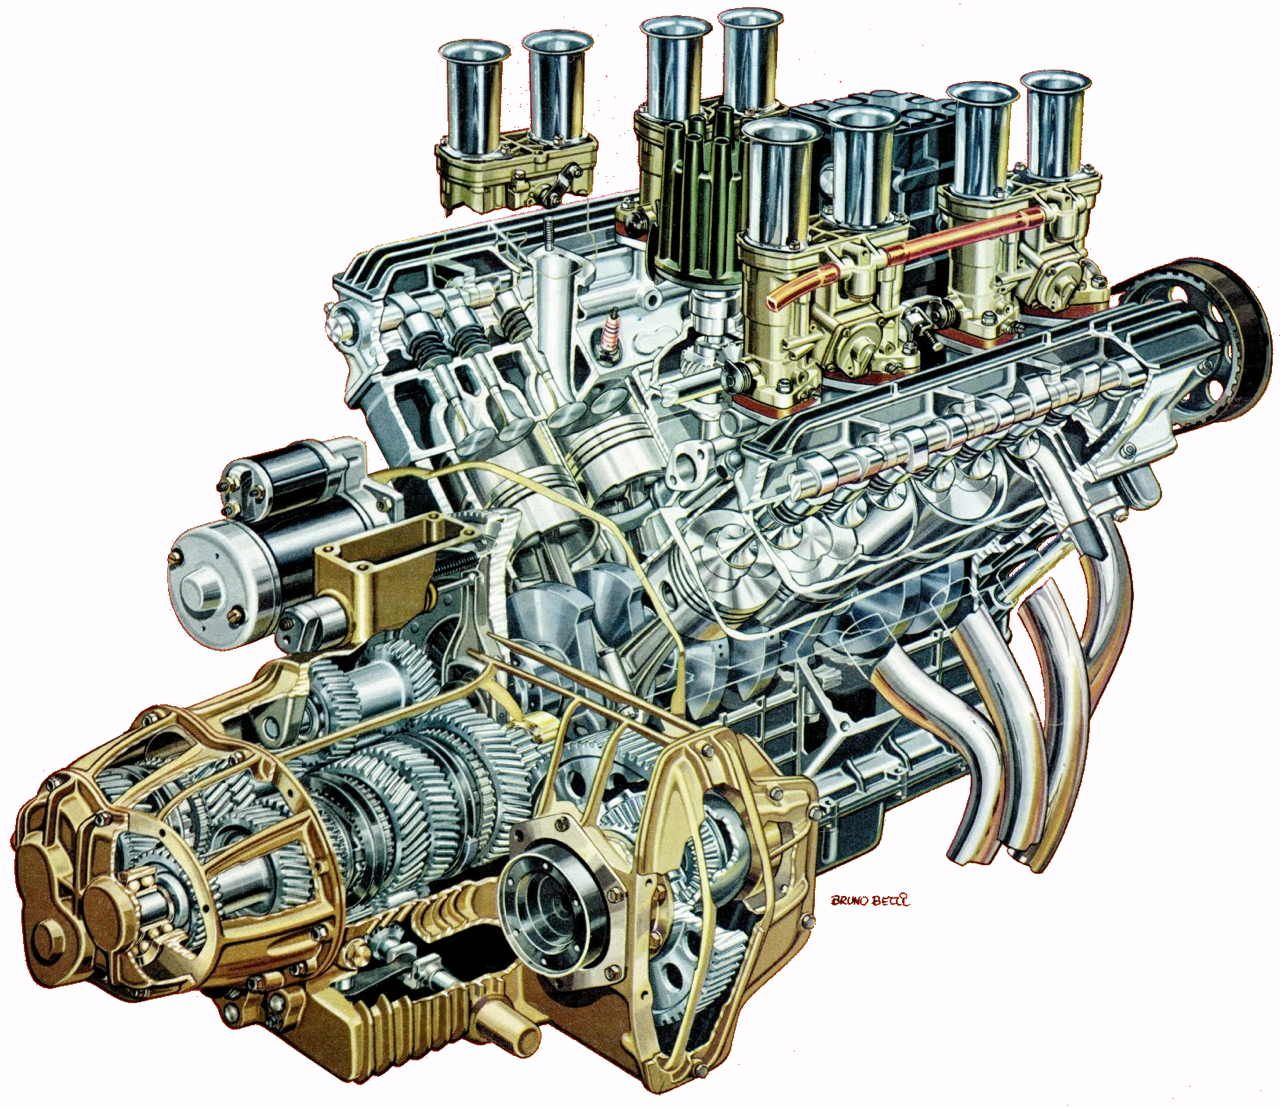 V8 engine cutaway illustration